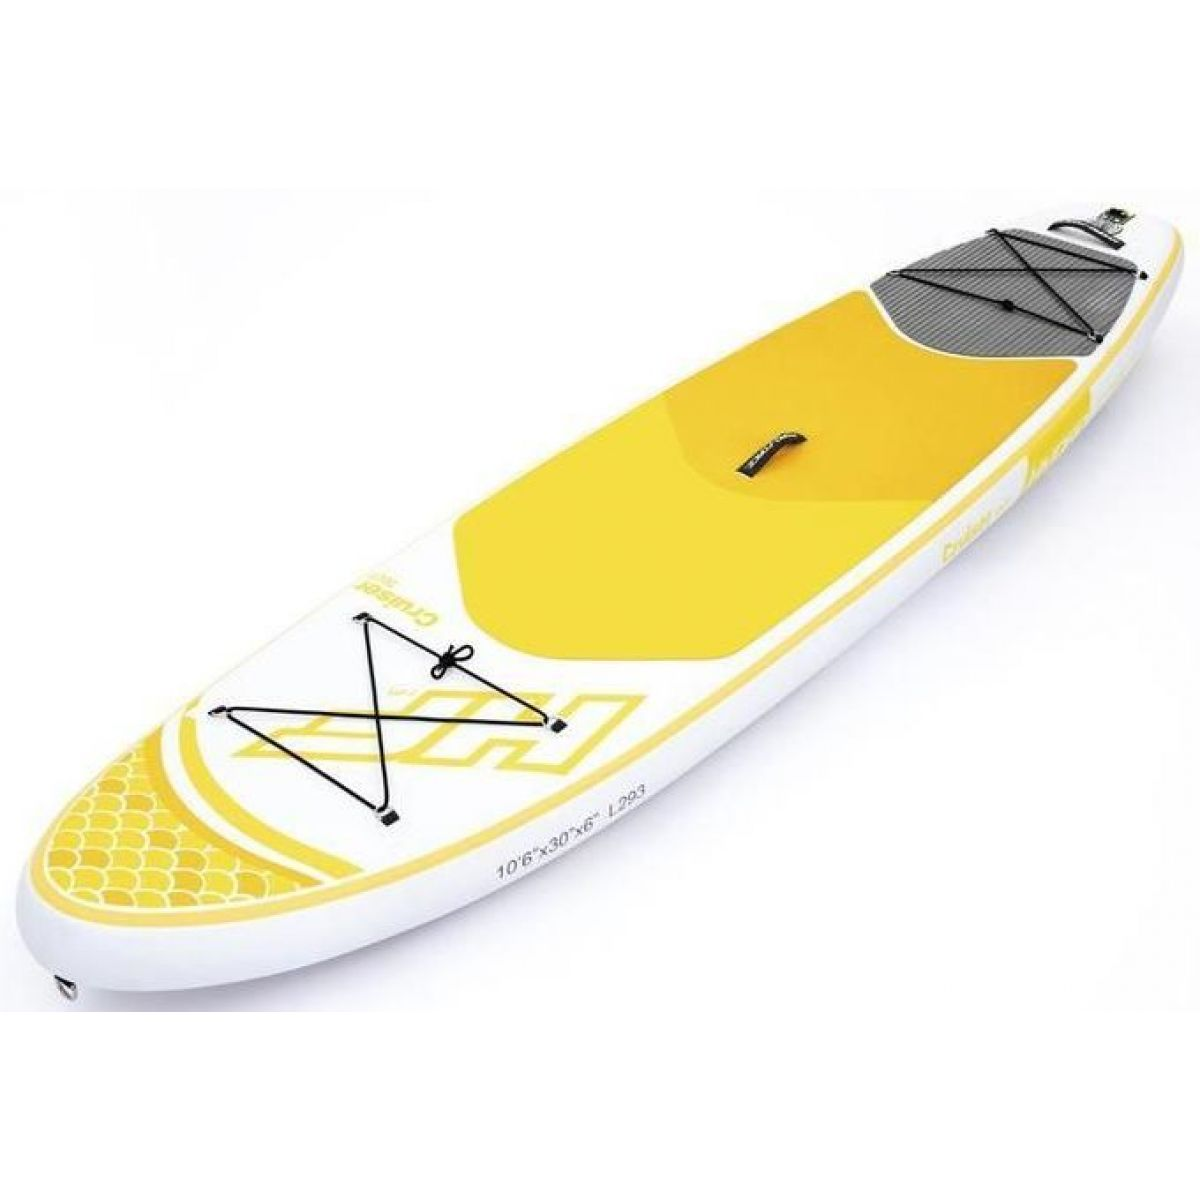 Bestway Paddleboard Cruiser Tech 320 x 76 x 15 cm